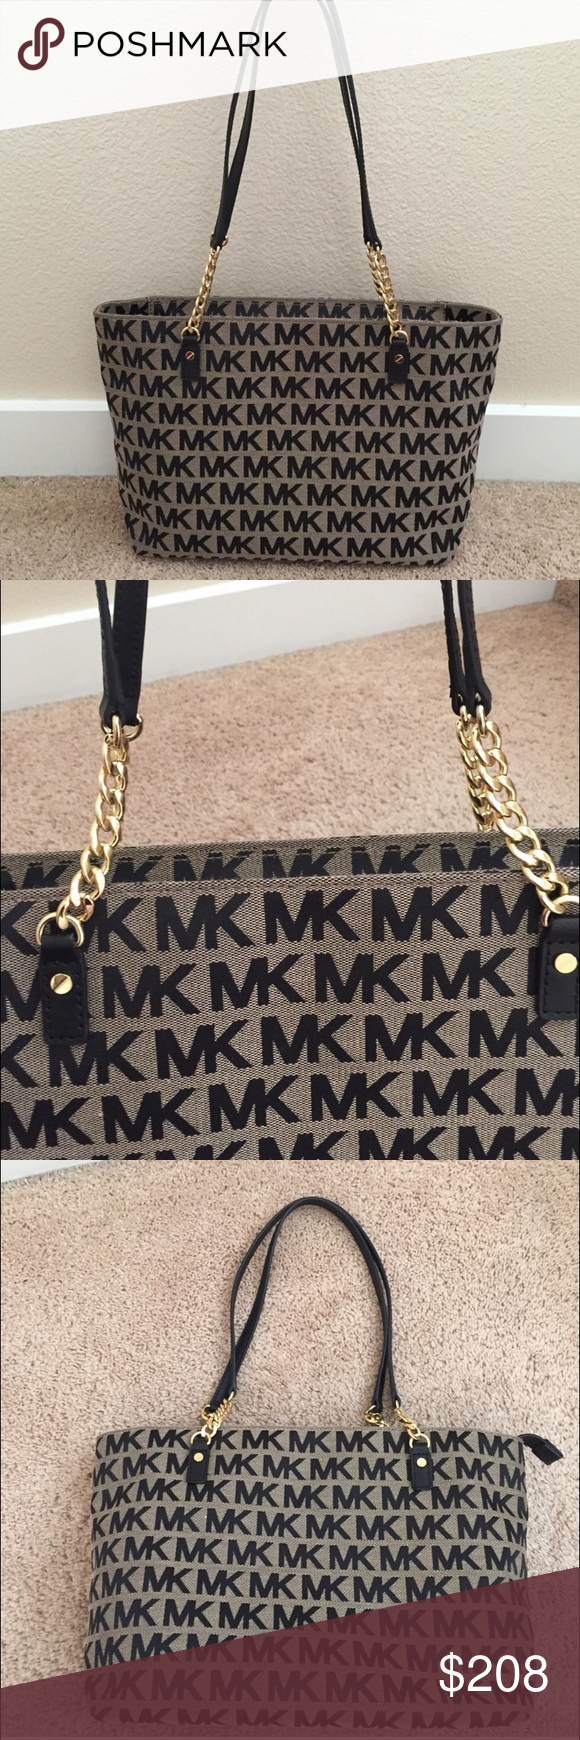 697c00b307b1 Michael Kors Tote The bag is a light tan brown color with black letters.  There is a zipper at the top which I love. The bag is roomy and has a few  zippers ...